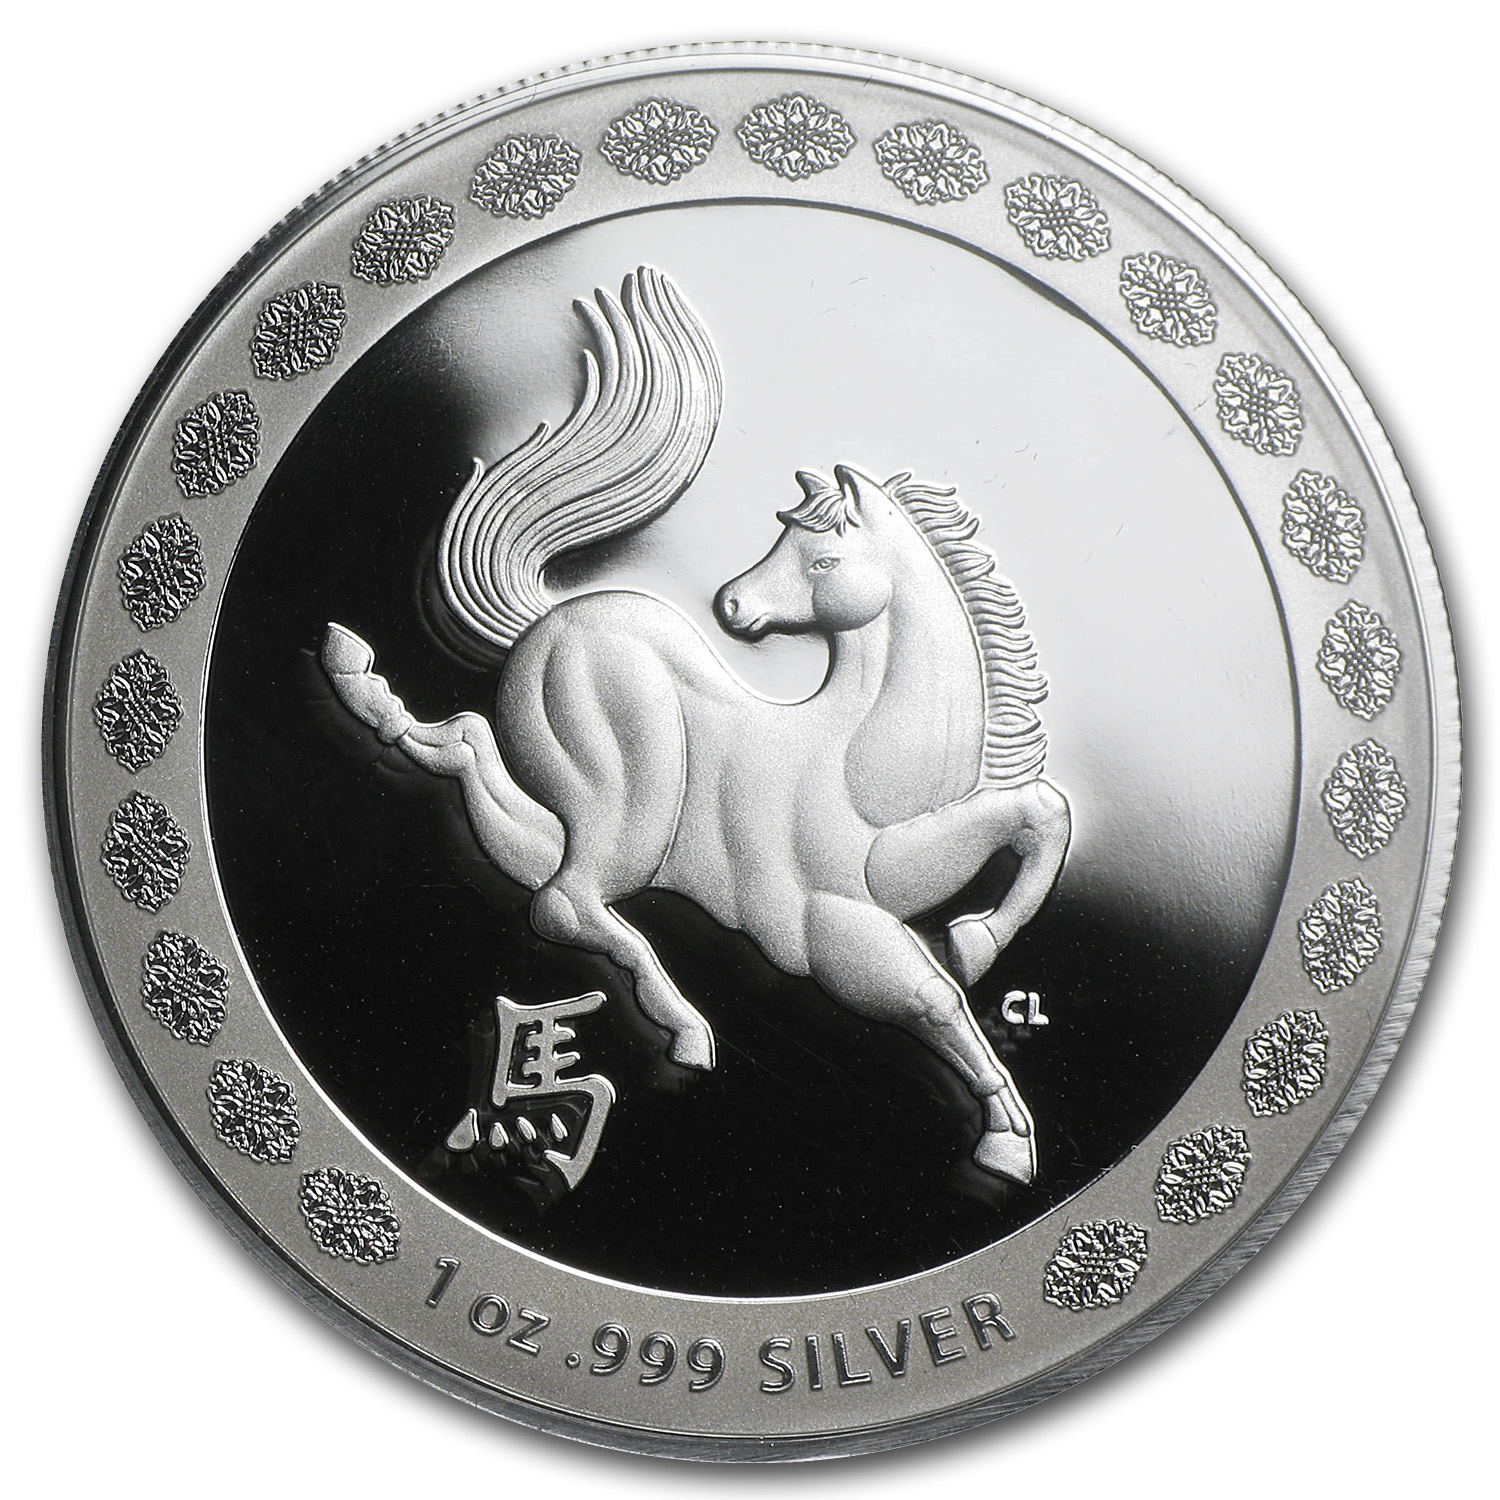 2014 Australia 1 oz Silver Year of the Horse Proof-Like